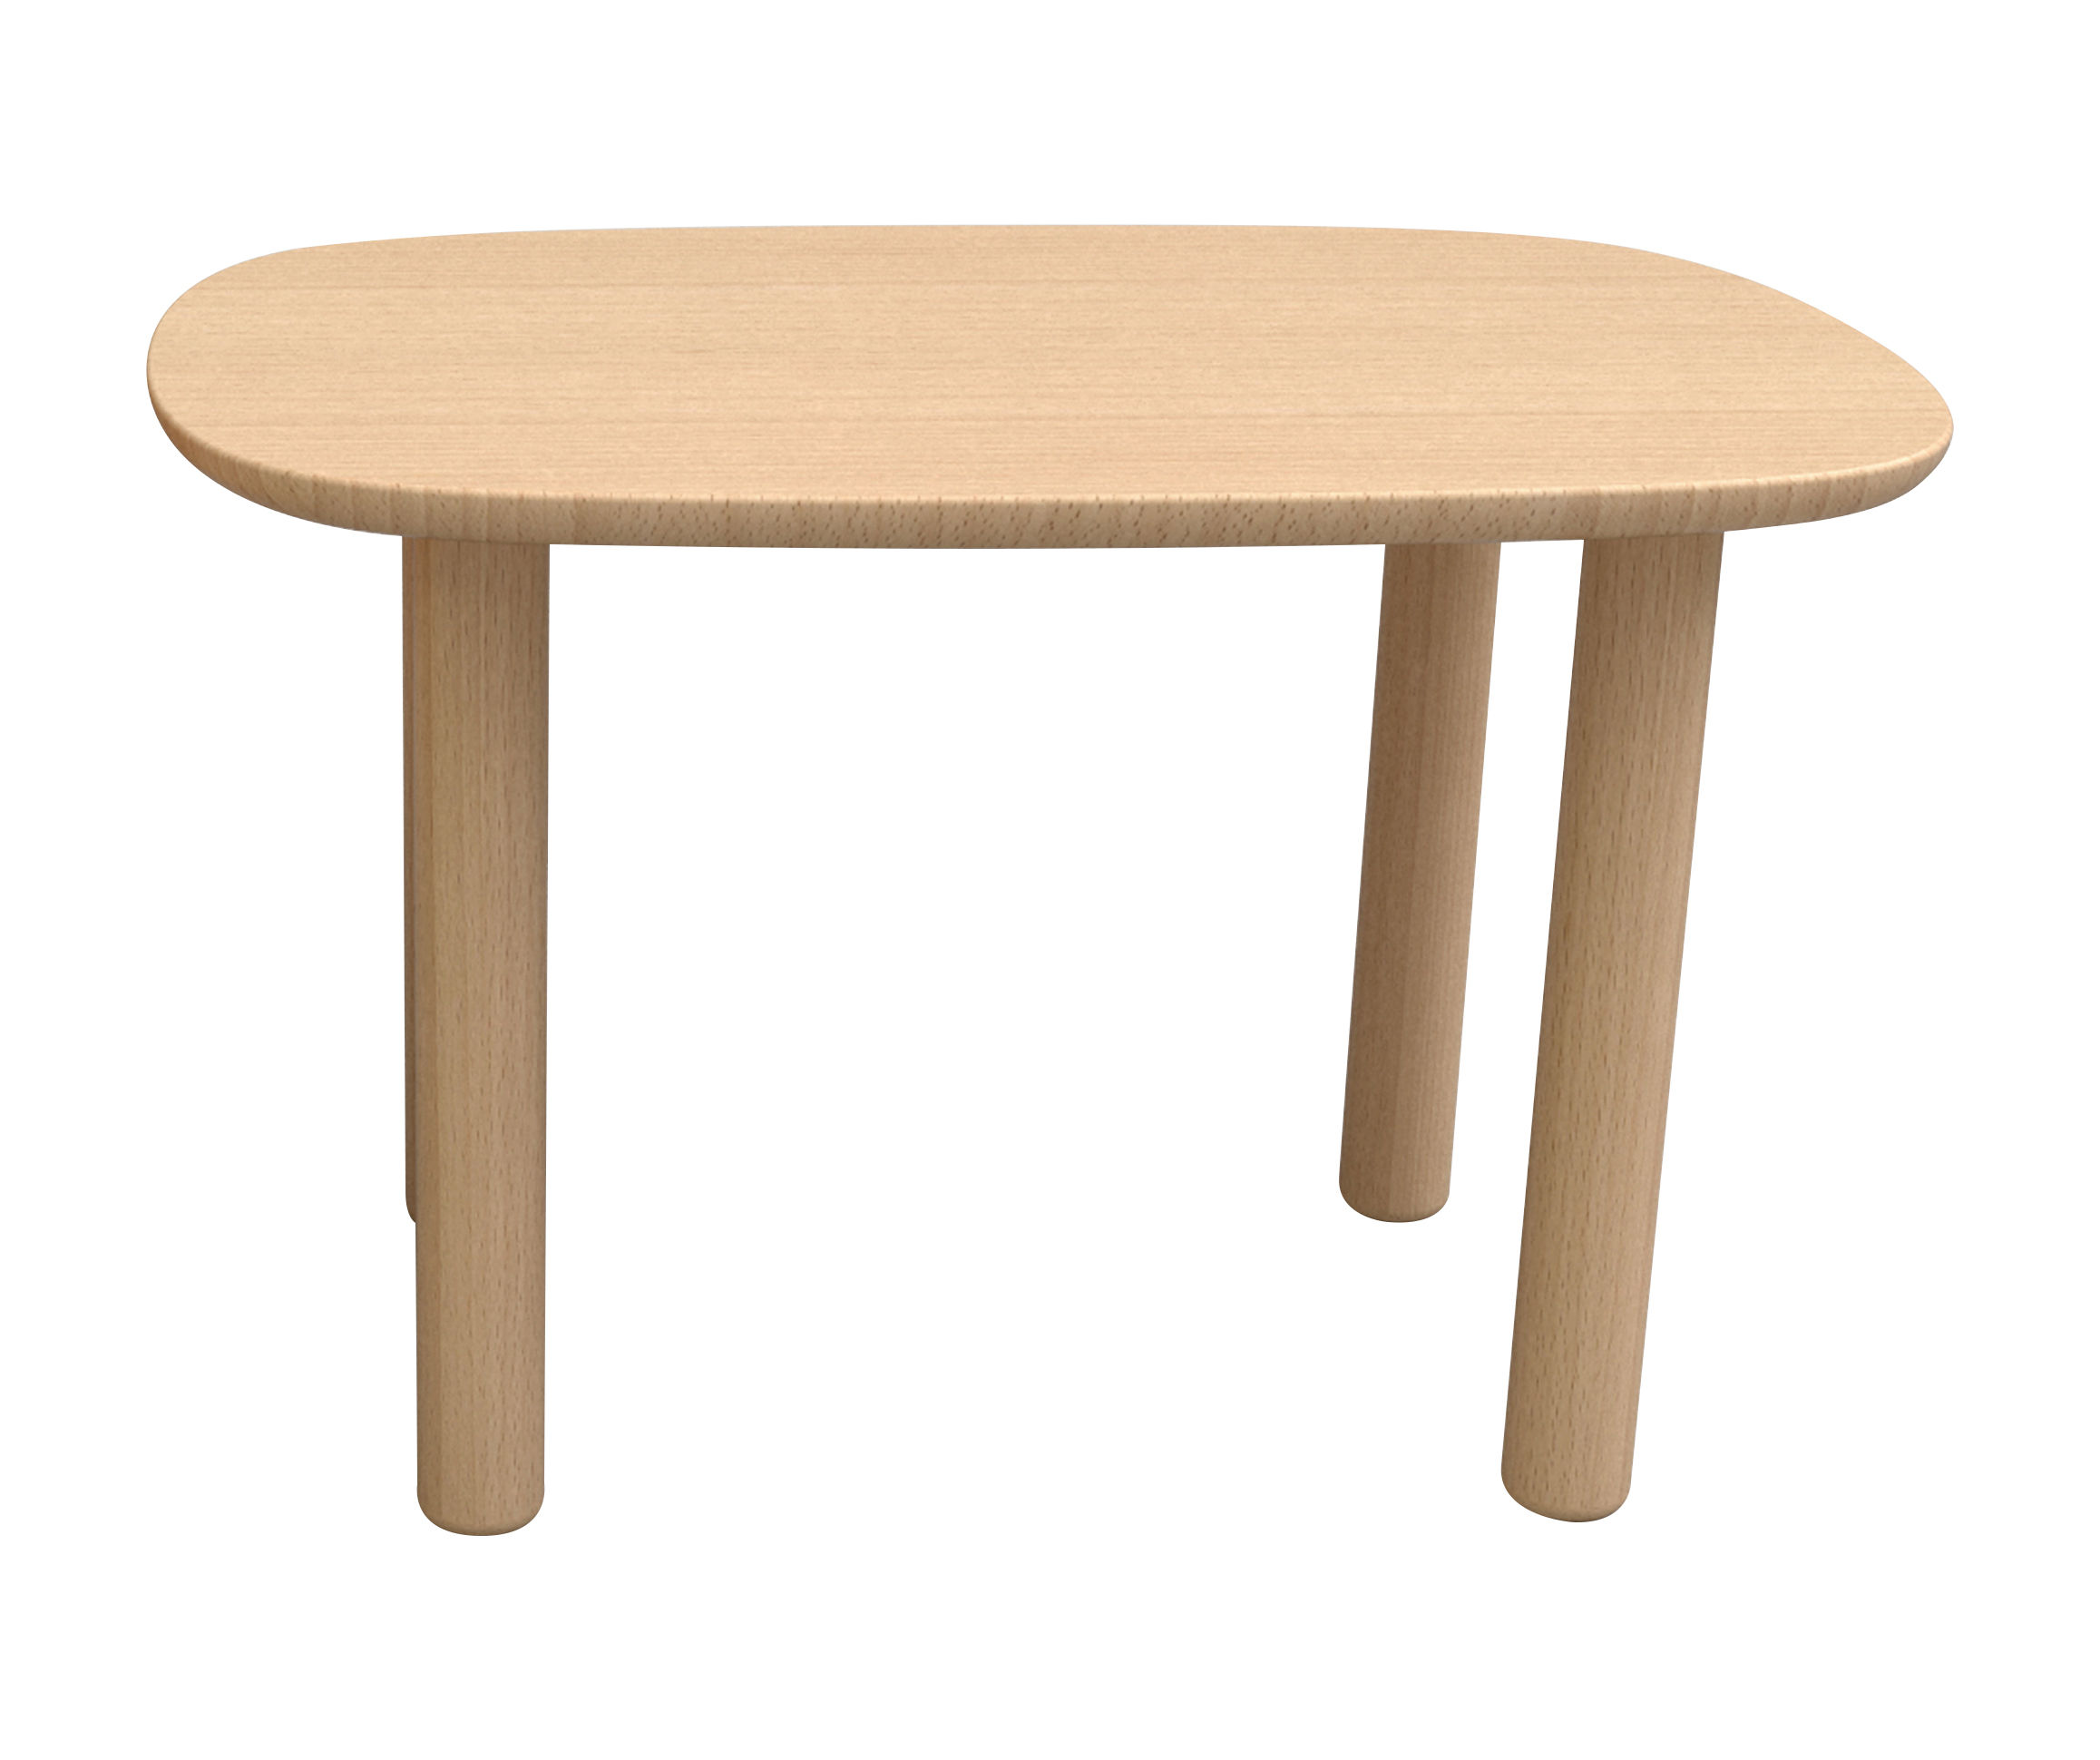 Furniture - Kids Furniture - Elephant Children table - 55 cm x 75 cm by EO - Beech - Lacquered beechwood